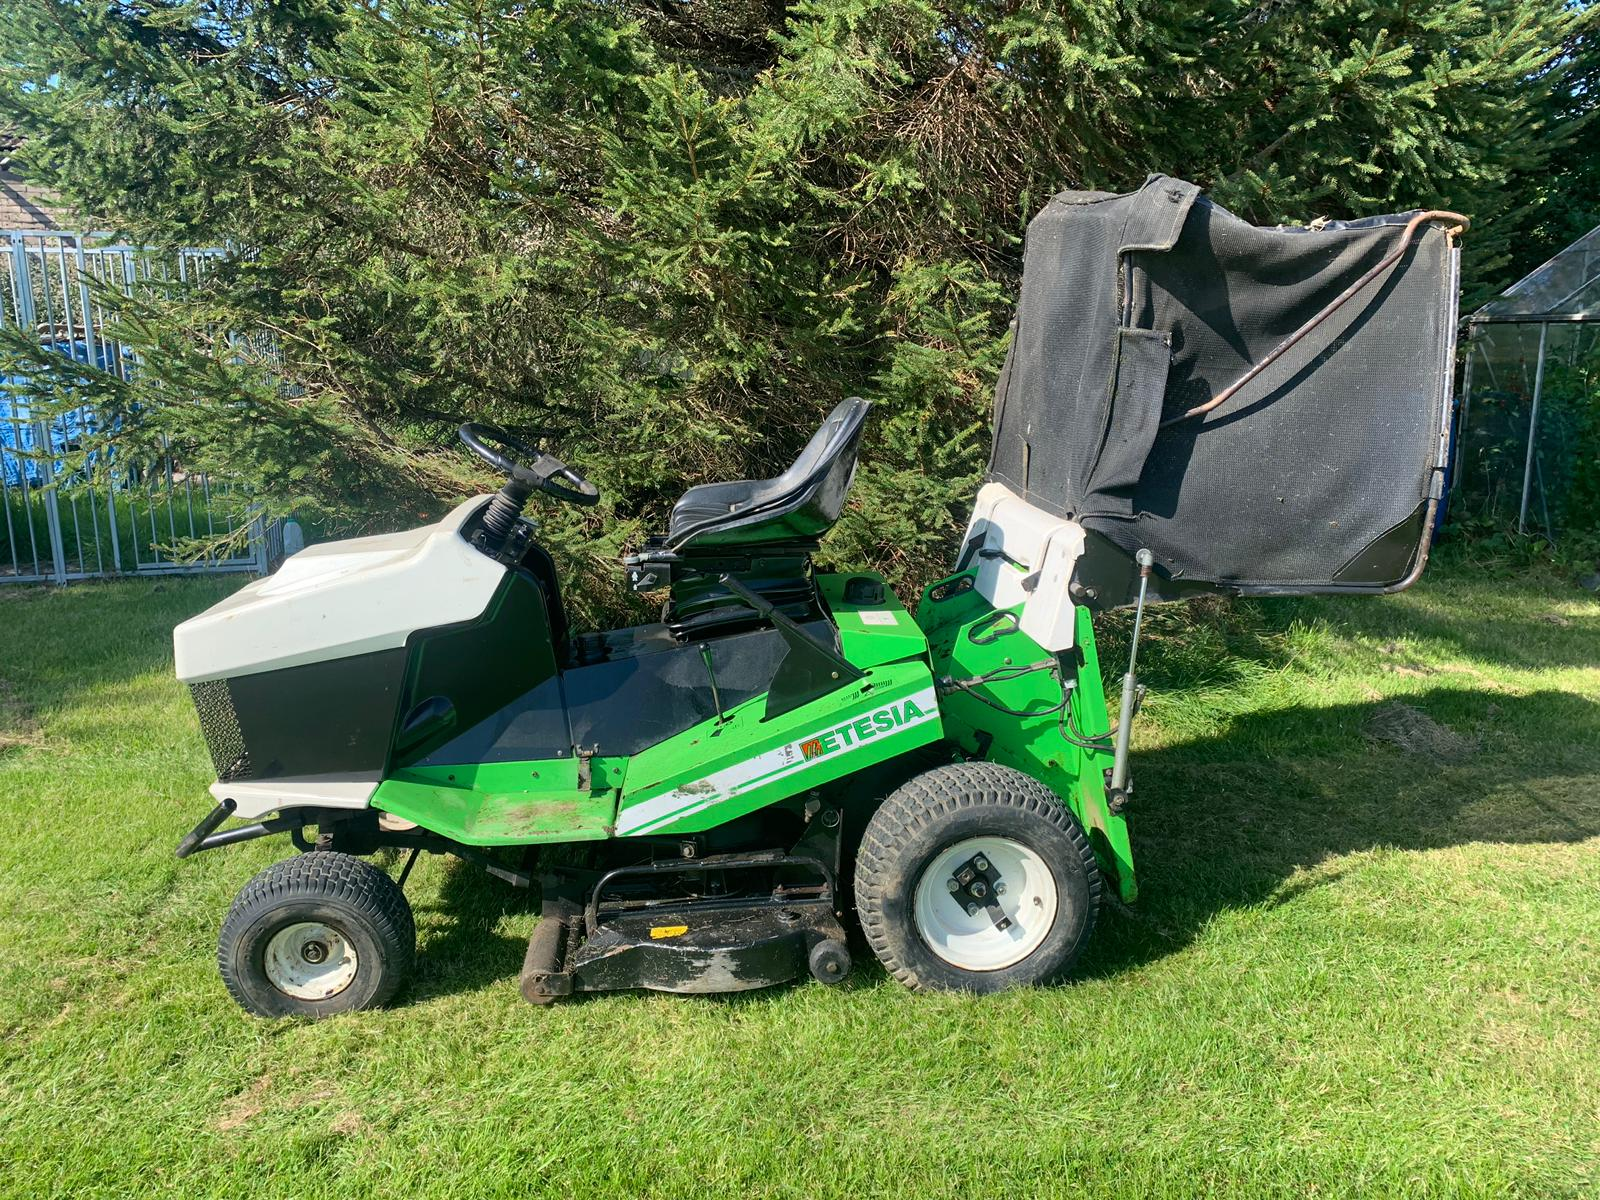 Lot 24 - ETESIA MVEHH HYDRO RIDE ON LAWN MOWER C/W REAR GRASS COLLECTOR, RUNS, WORKS AND CUTS *PLUS VAT*